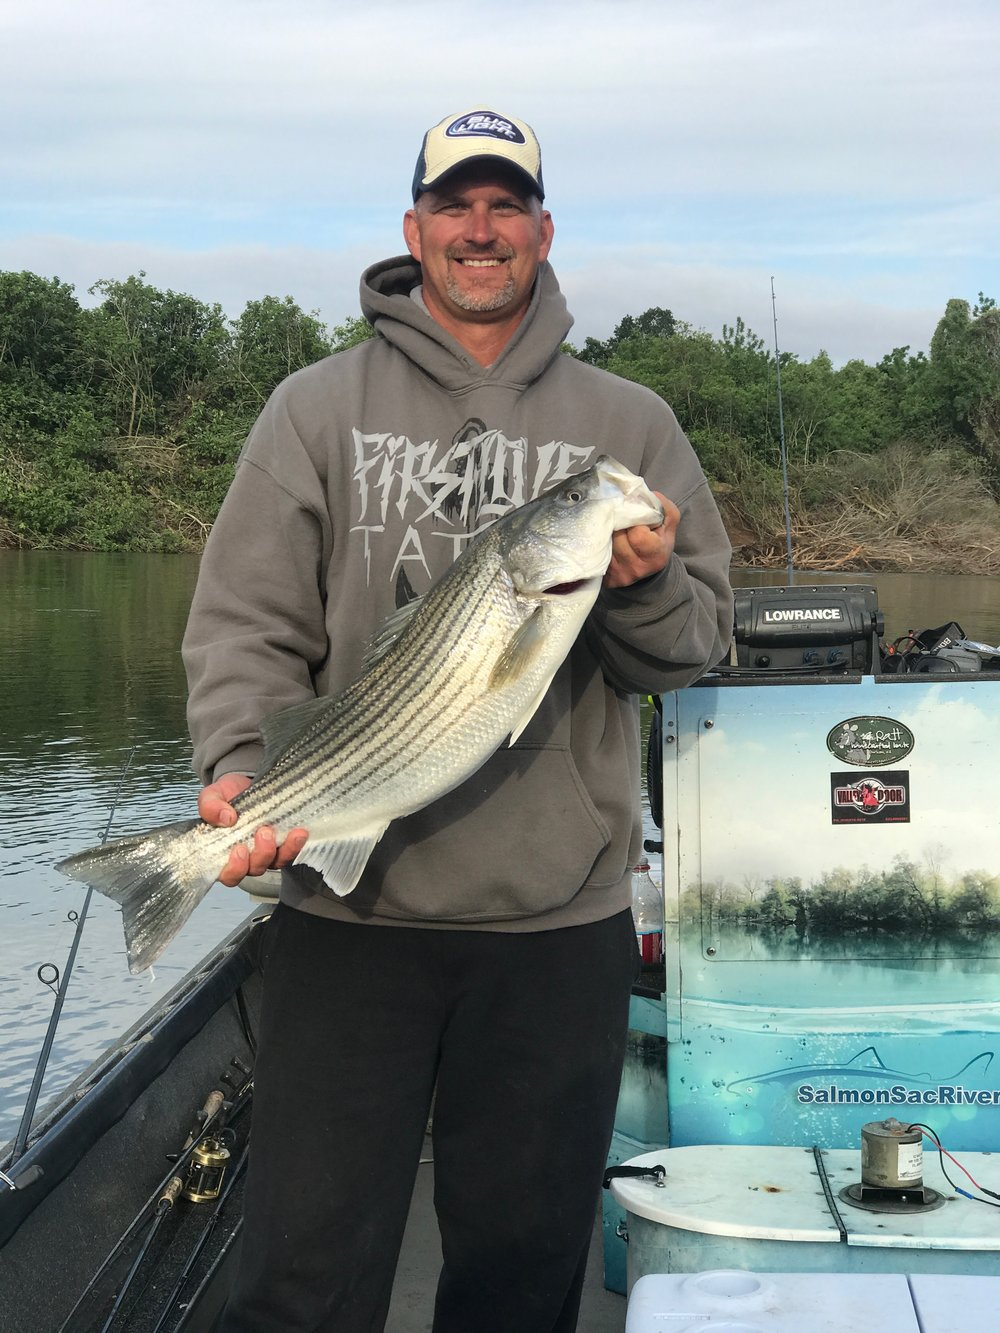 Chris Olson from Anderson, Ca holding a double digit striped bass he caught on the Feather River with striped bass fishing guide Mike Rasmussen of  SalmonSacRiver.com .